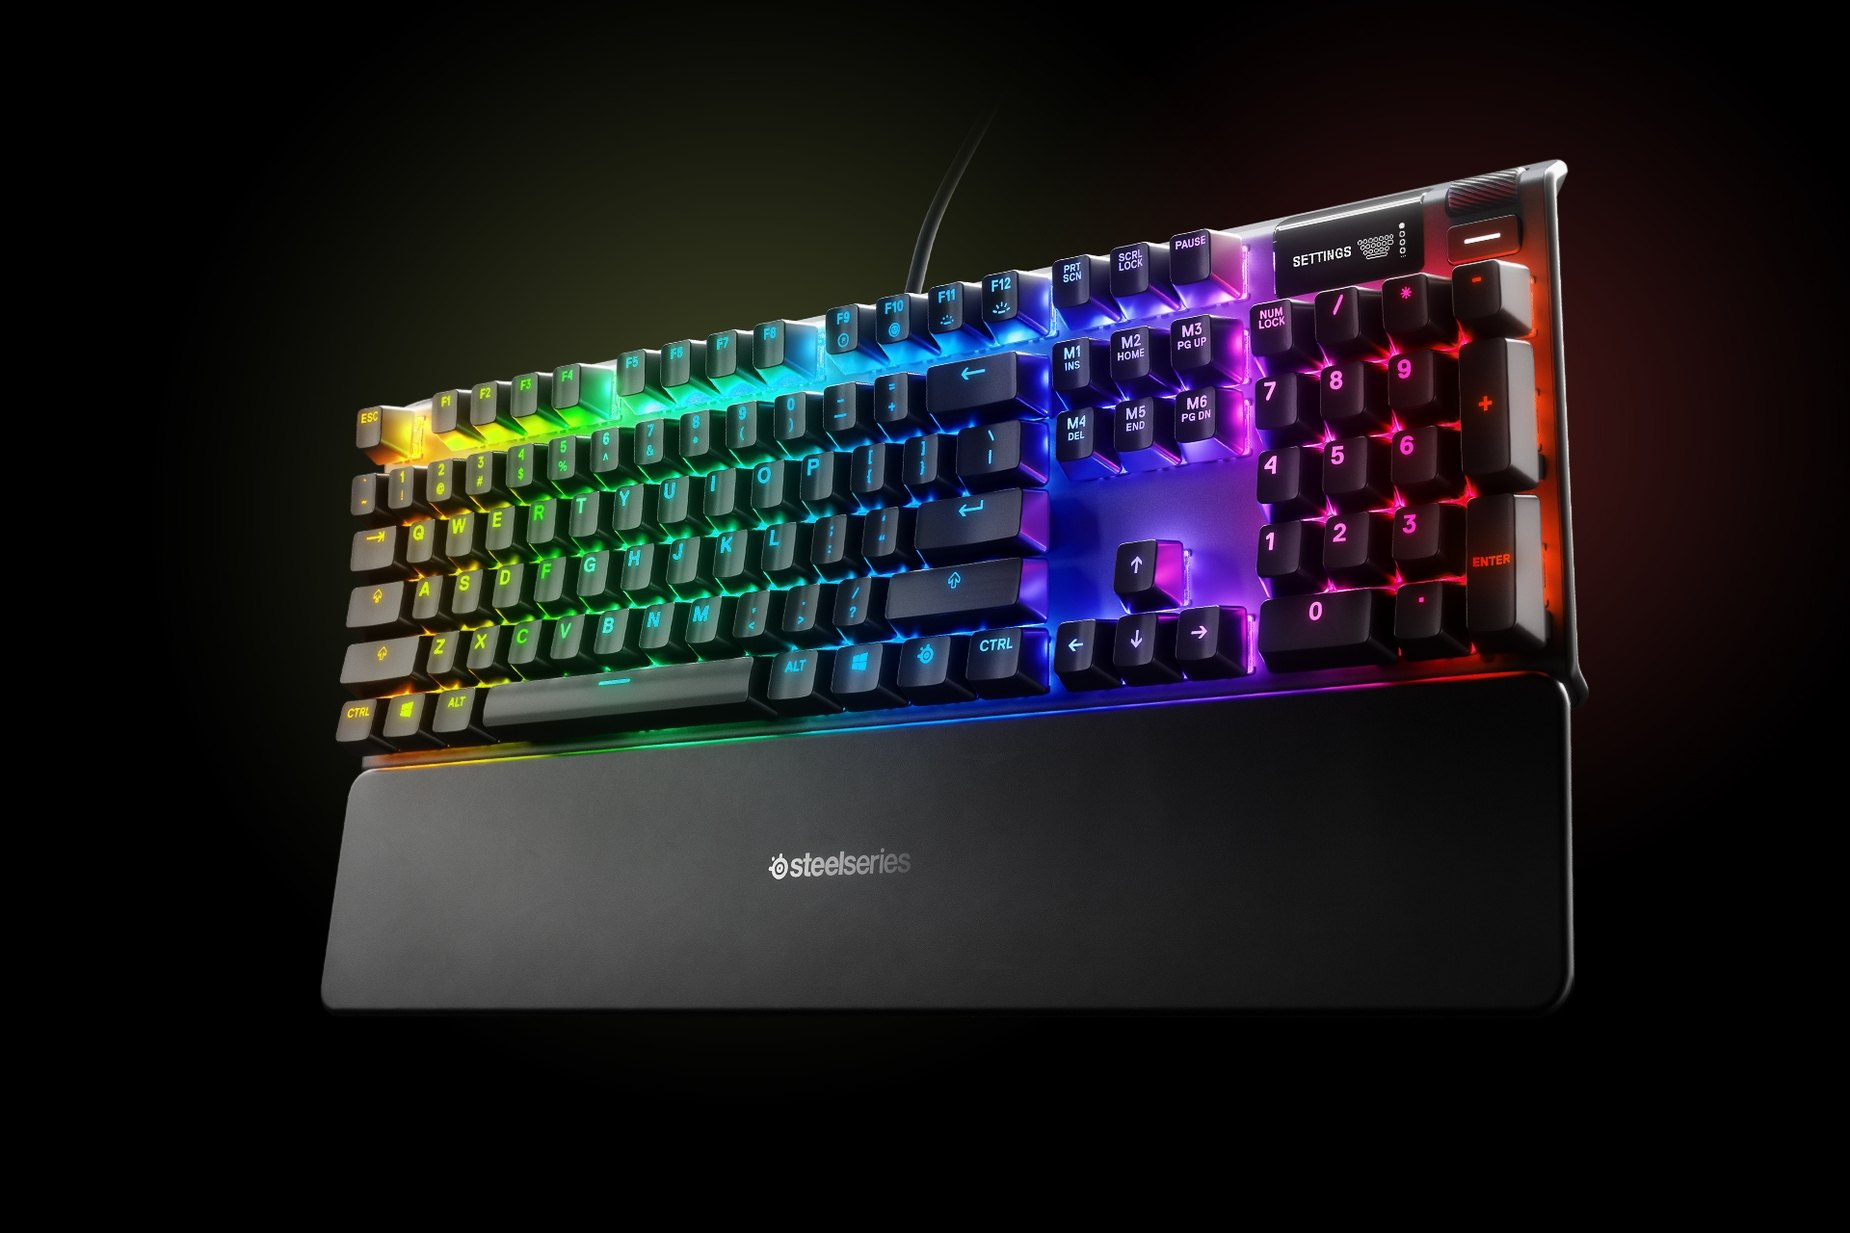 US English-Apex 7 (Blue Switch) gaming keyboard with the illumination lit up on dark background, also shows the OLED screen and controls used to change settings and adjust audio